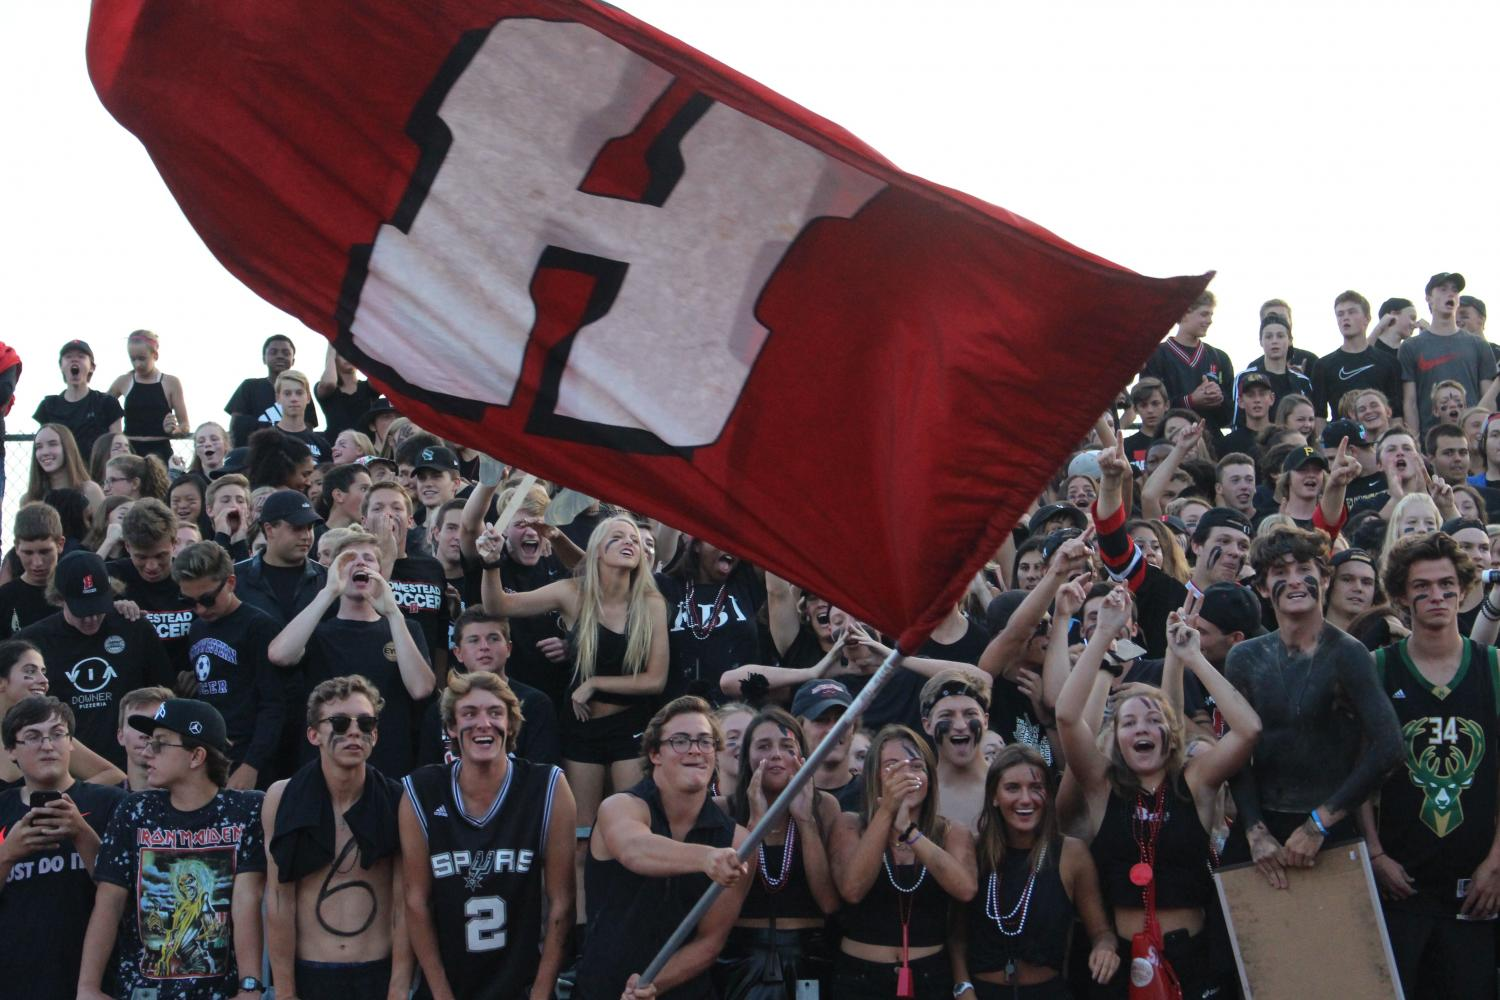 .+The+Homestead+student+section+cheers+for+the+football+players+while+encompassing+the+black+theme.